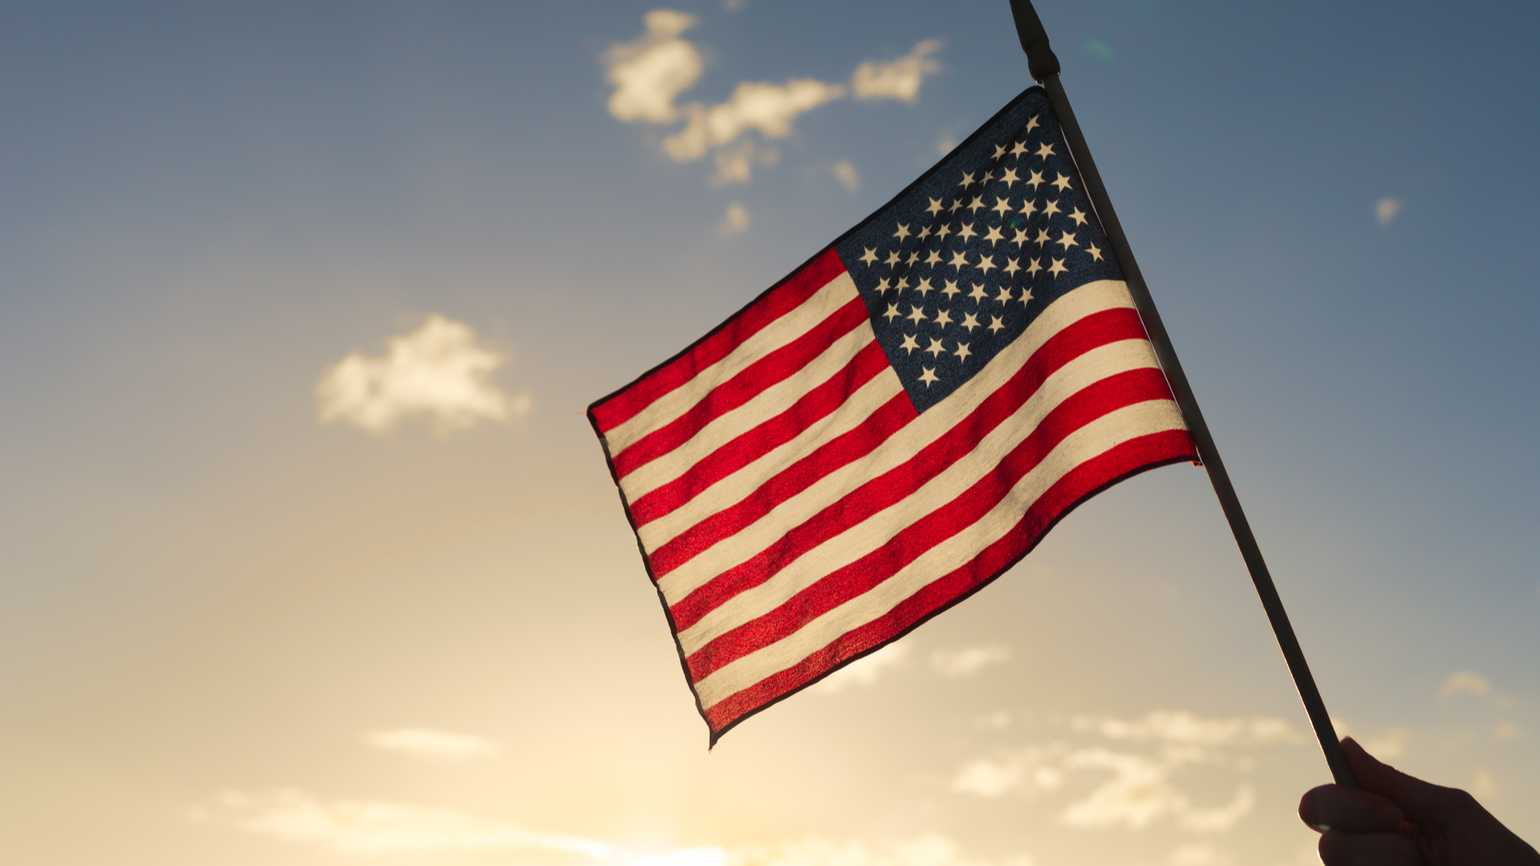 A Devotion for July 4th